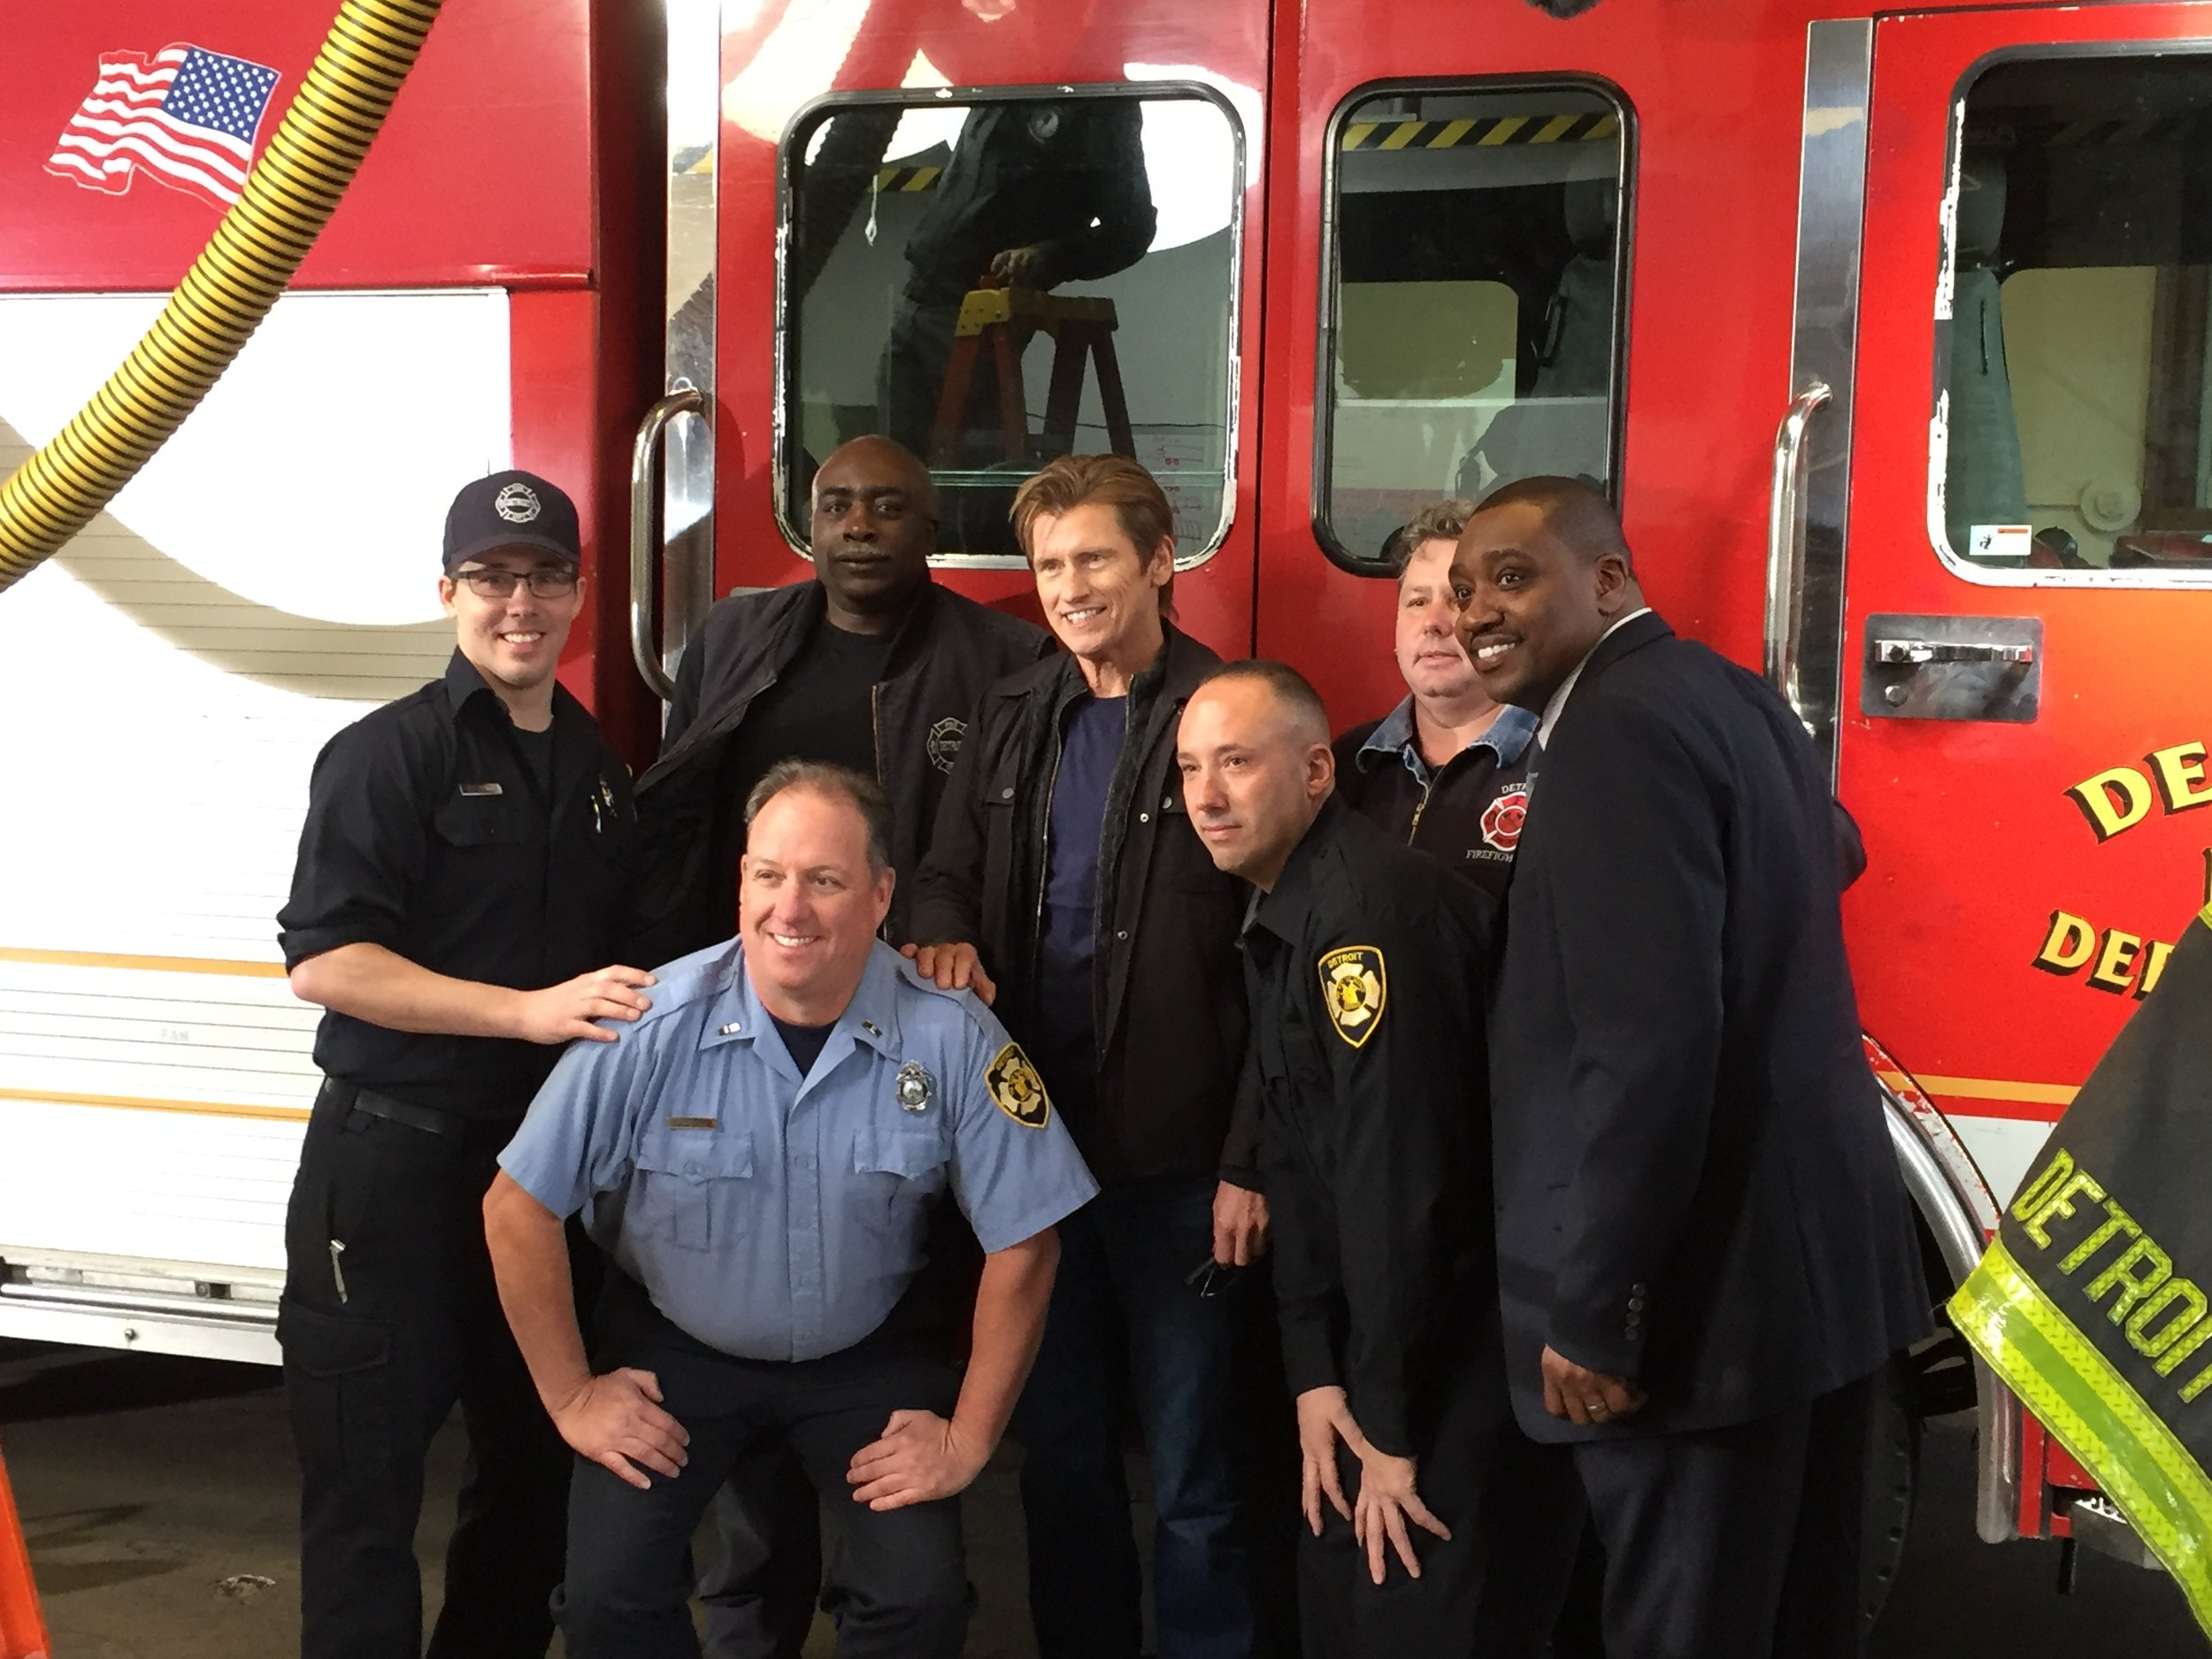 Denis Leary & Detyroit Firefighters.JPG